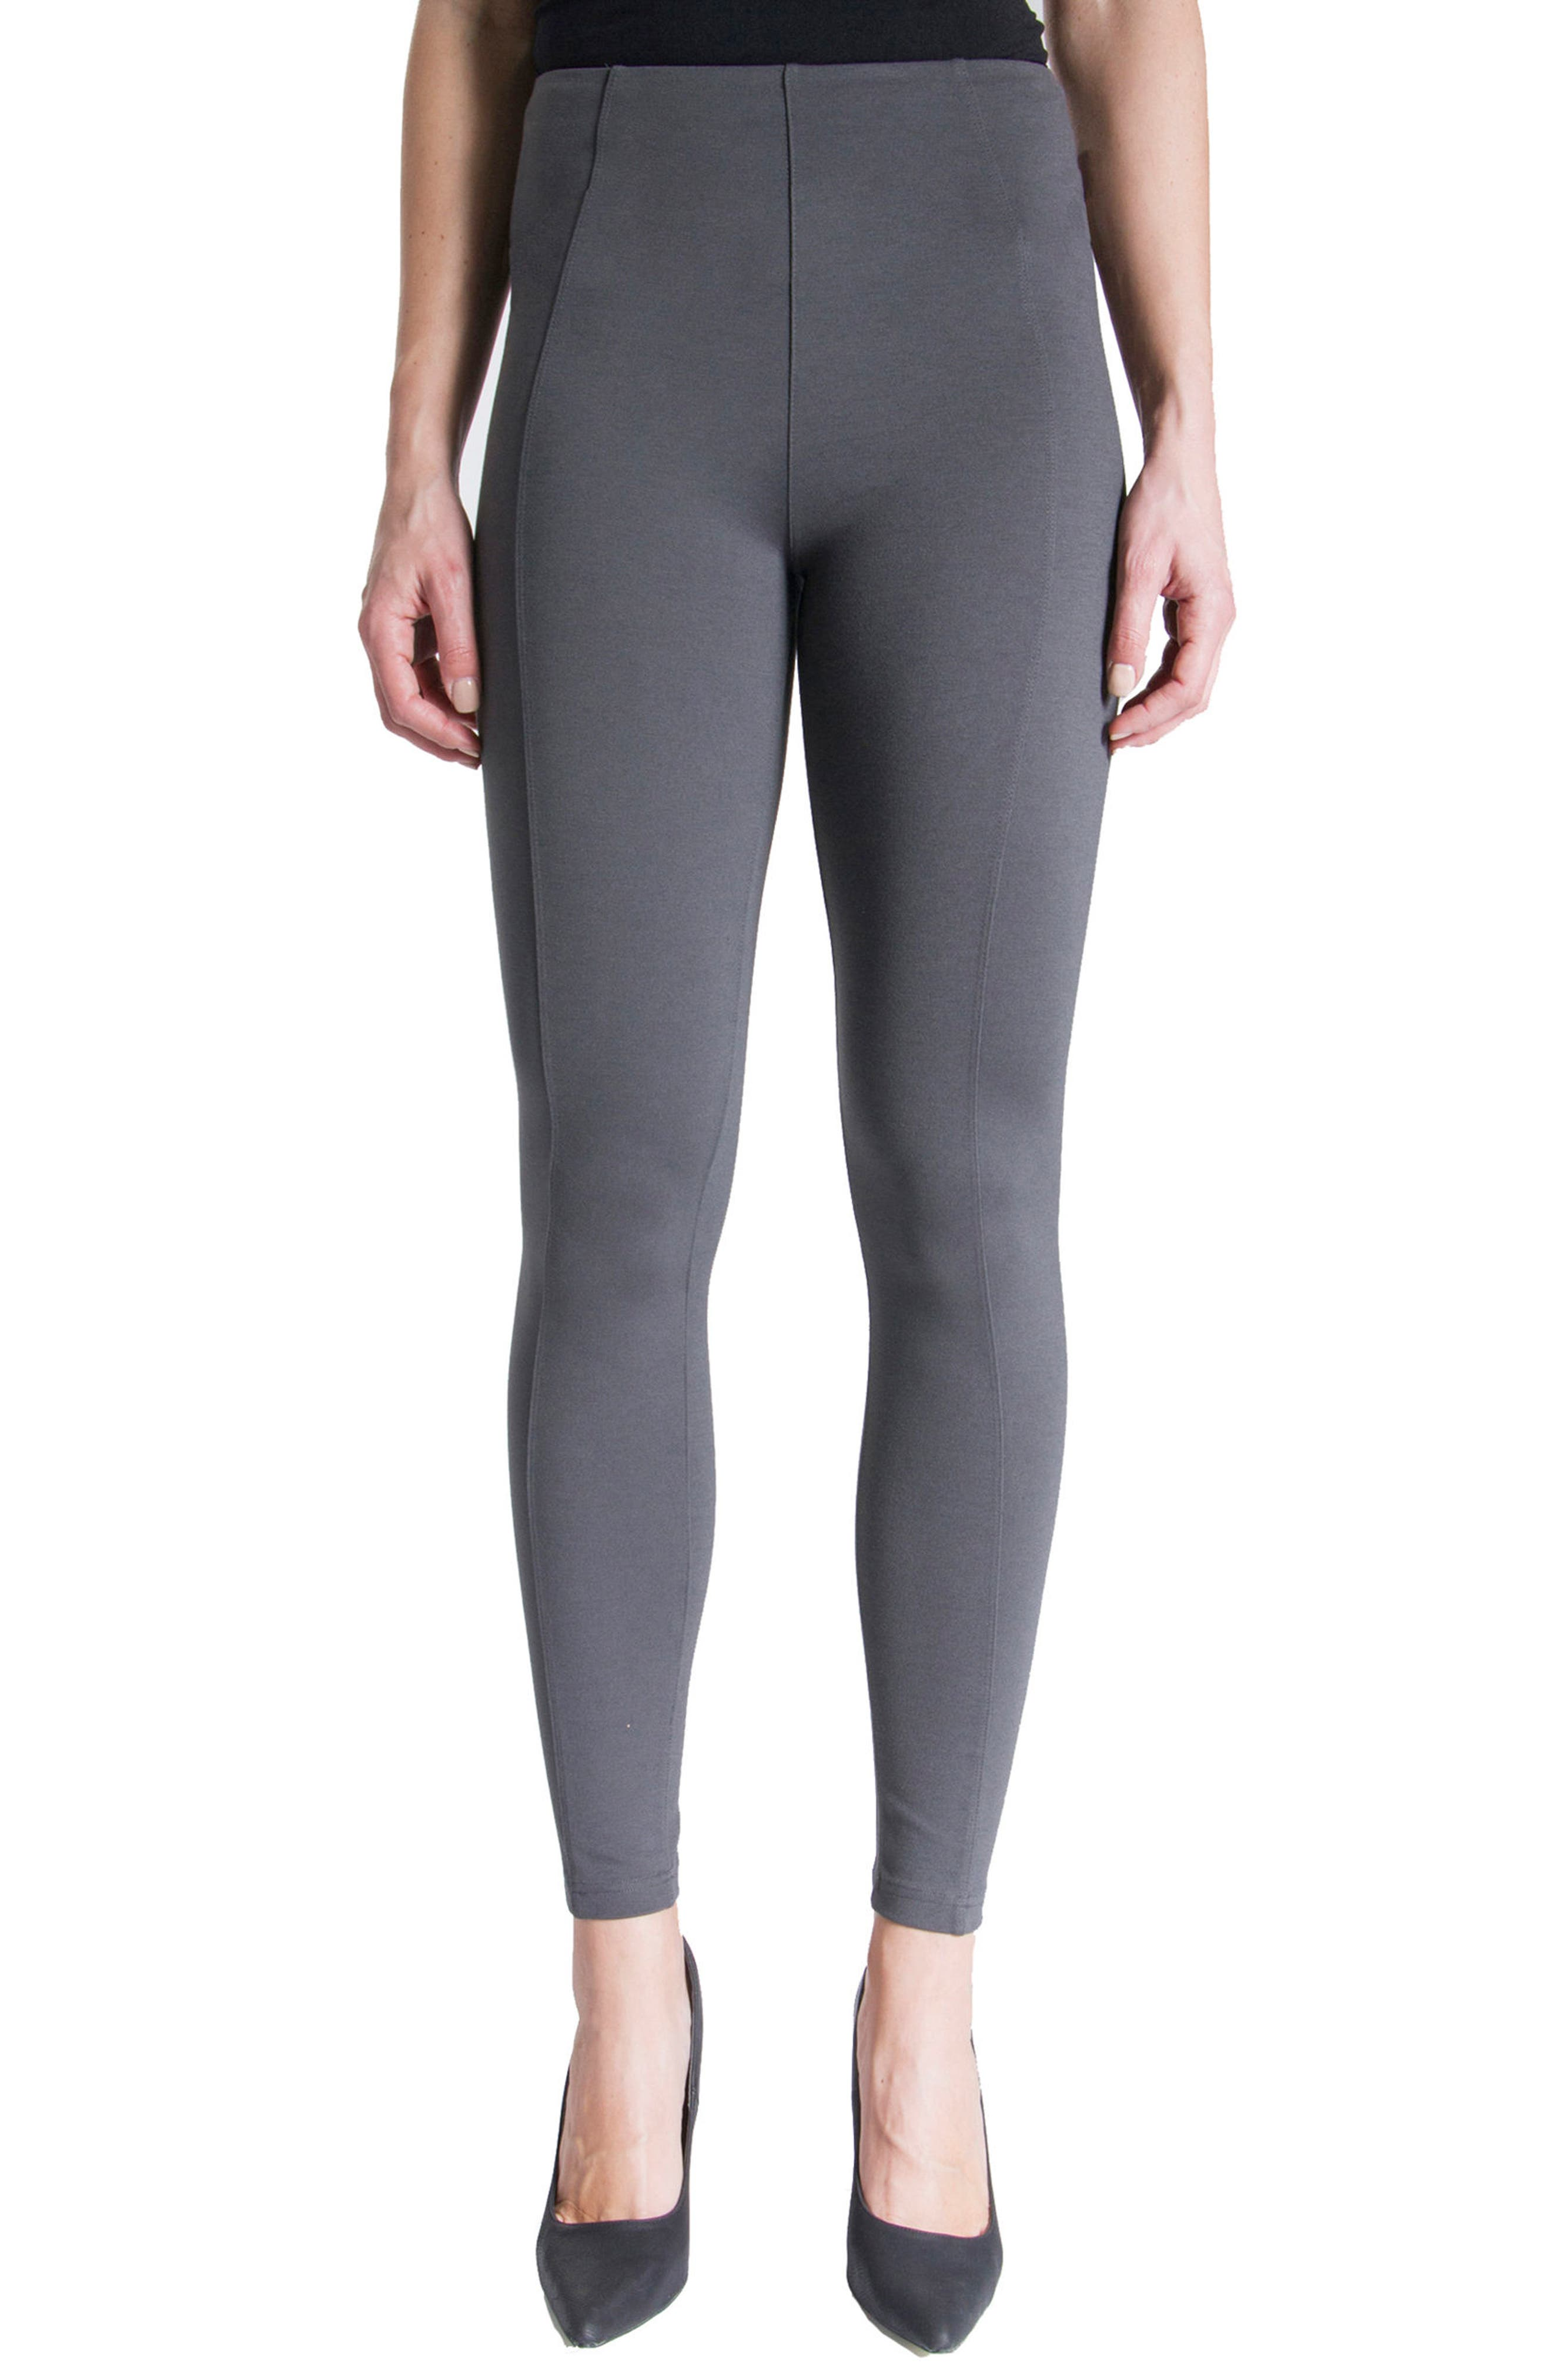 LIVERPOOL Reese Stretch Knit Leggings, Main, color, MAGNET